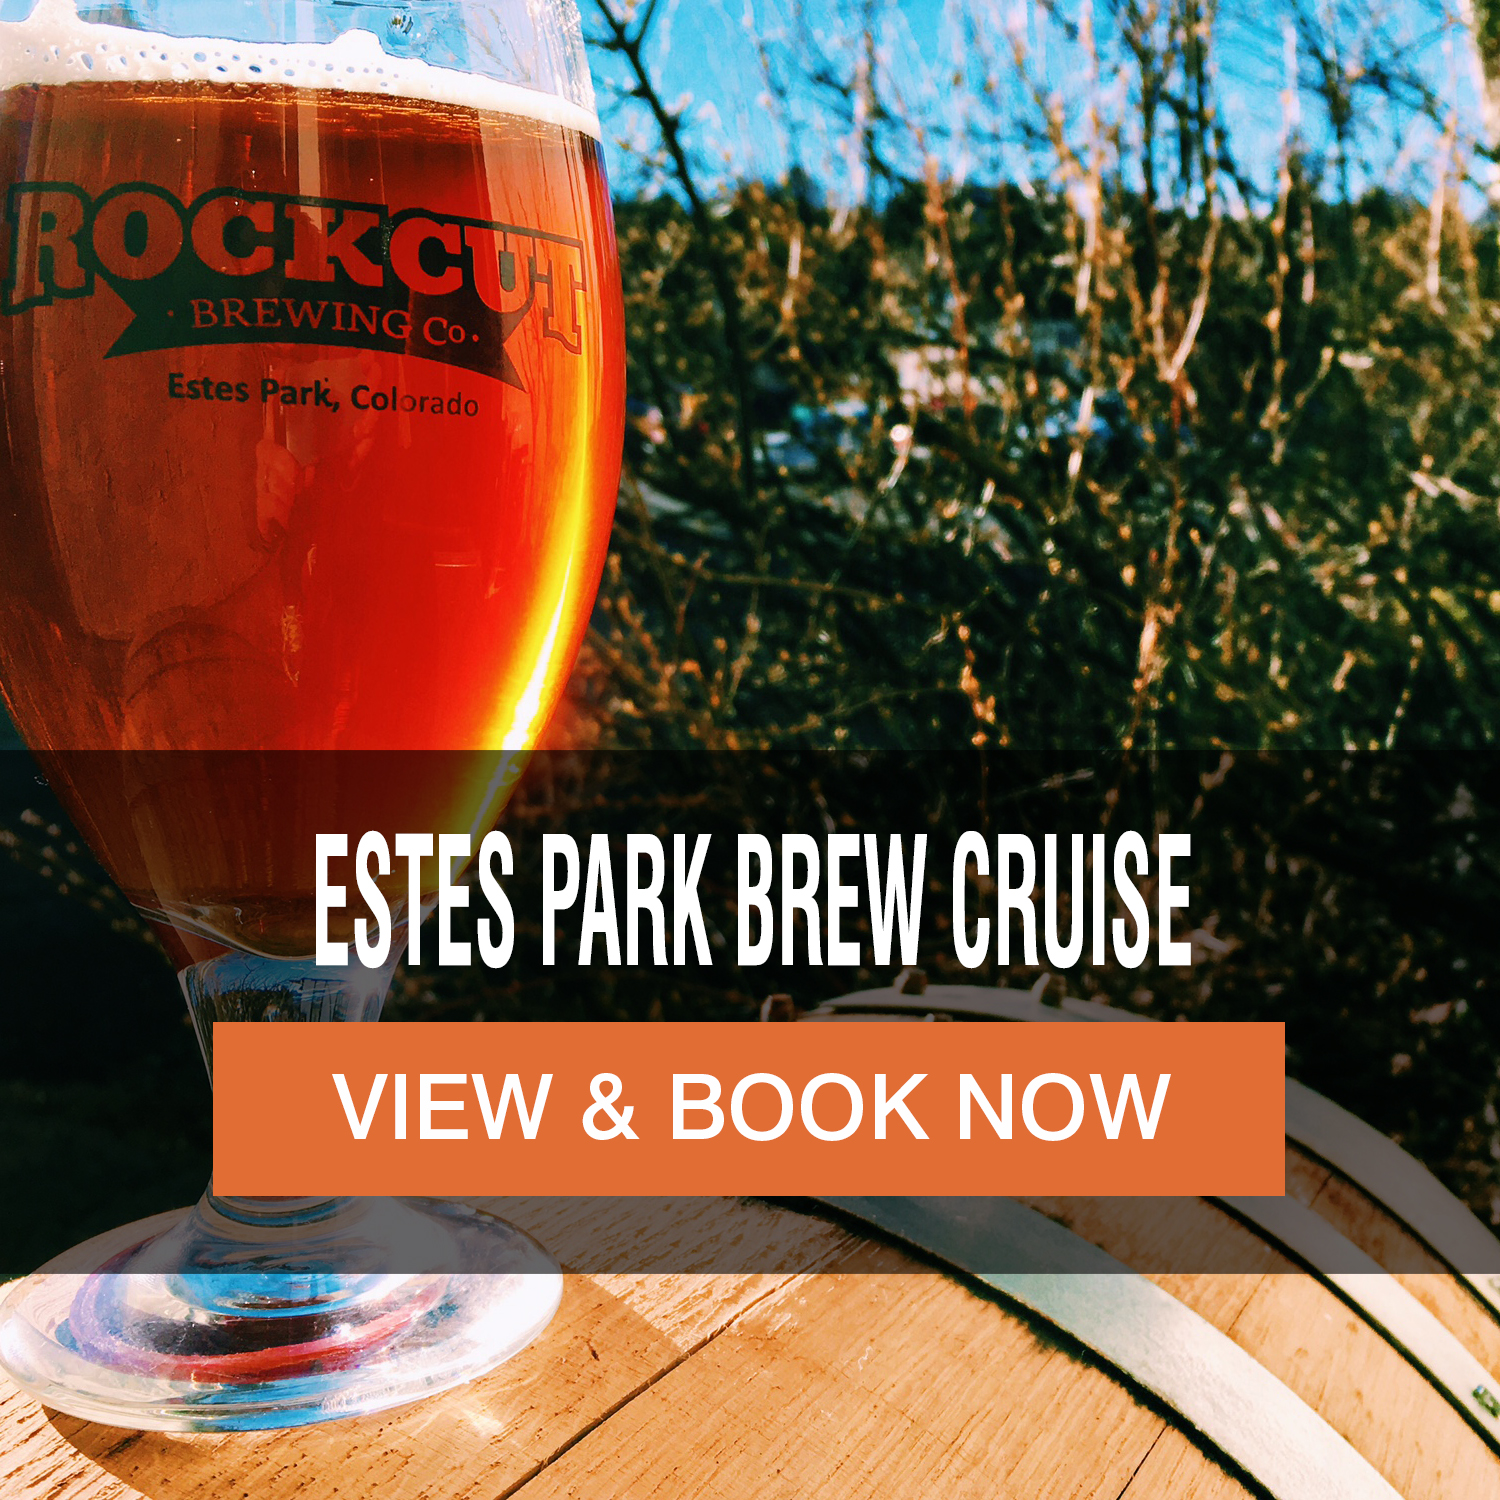 rock cut Estes Park Brew cruise.jpg